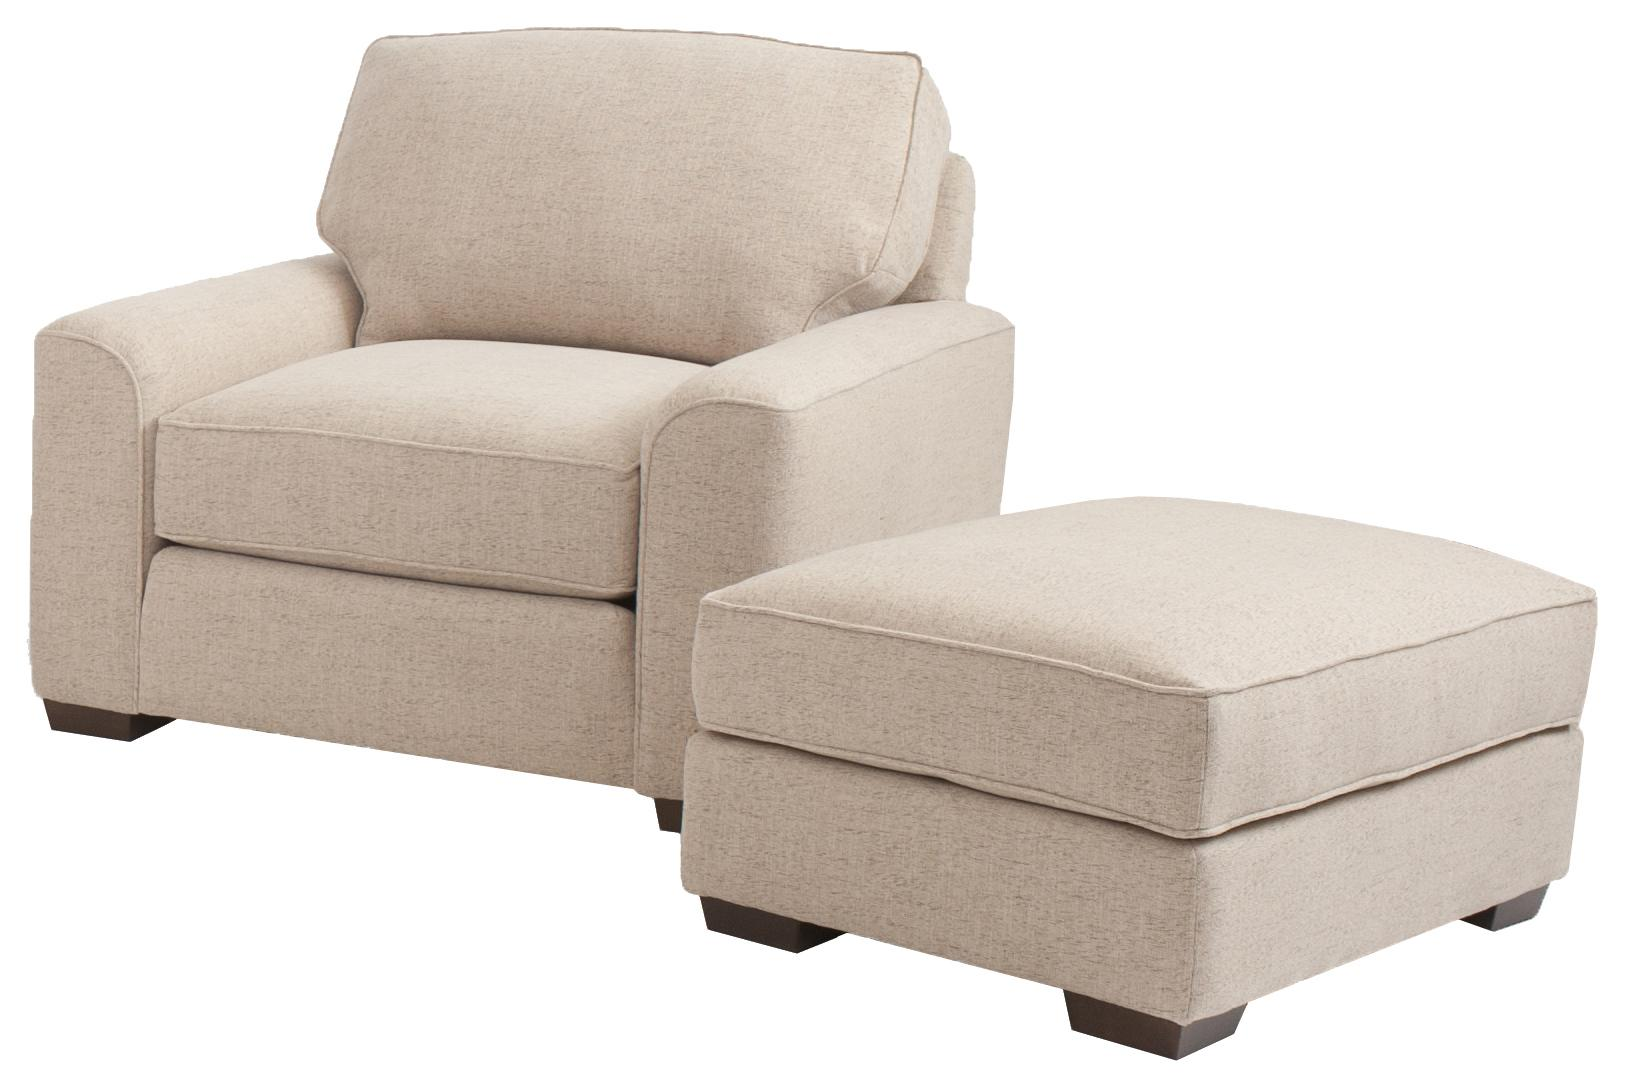 Chair And Ottoman Retro Styled Chair And Ottoman Set By Smith Brothers